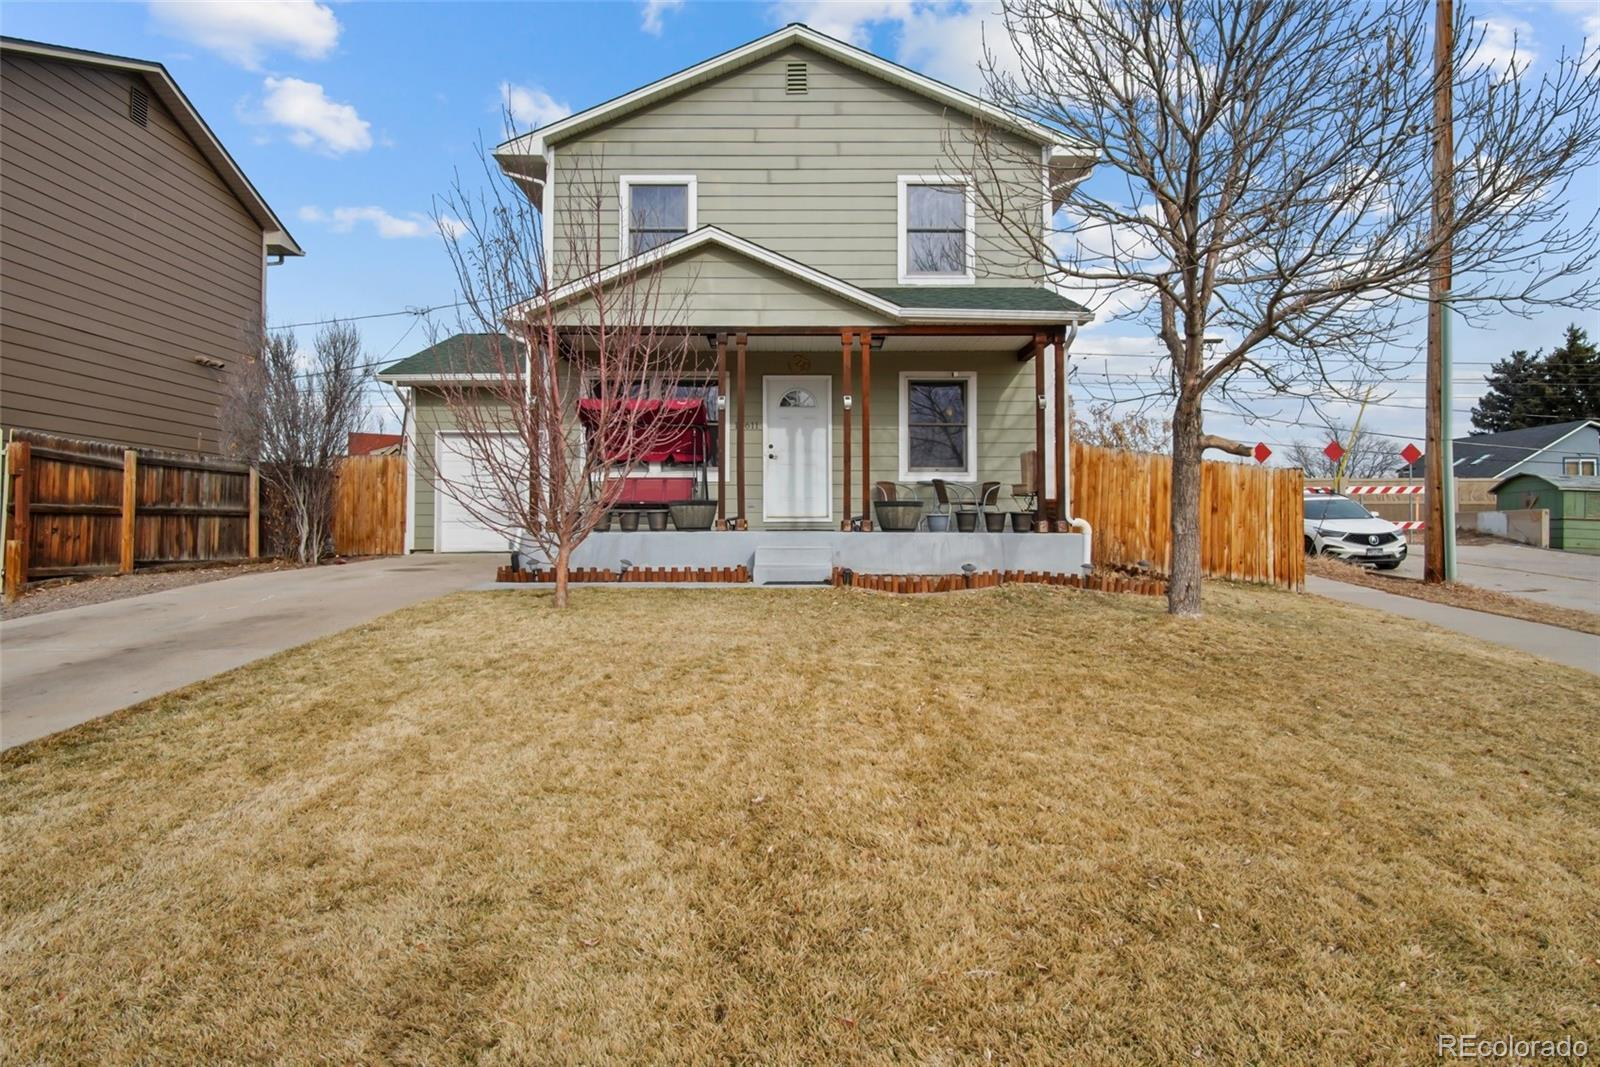 10611 W 13th Avenue, Lakewood, CO 80215 - #: 8999511